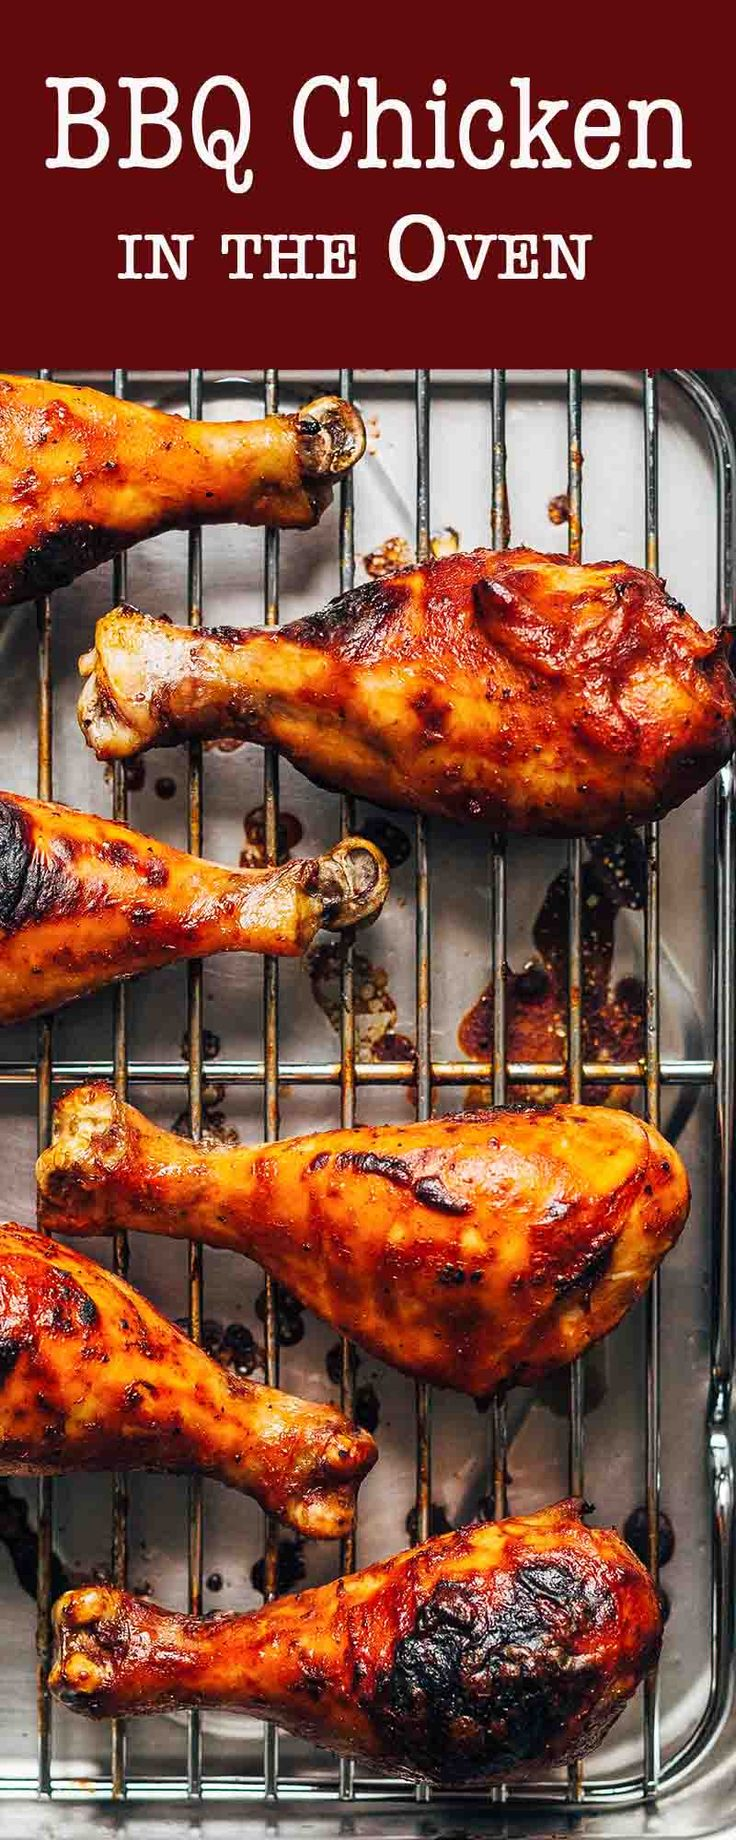 how to cook chicken legs in the oven uk